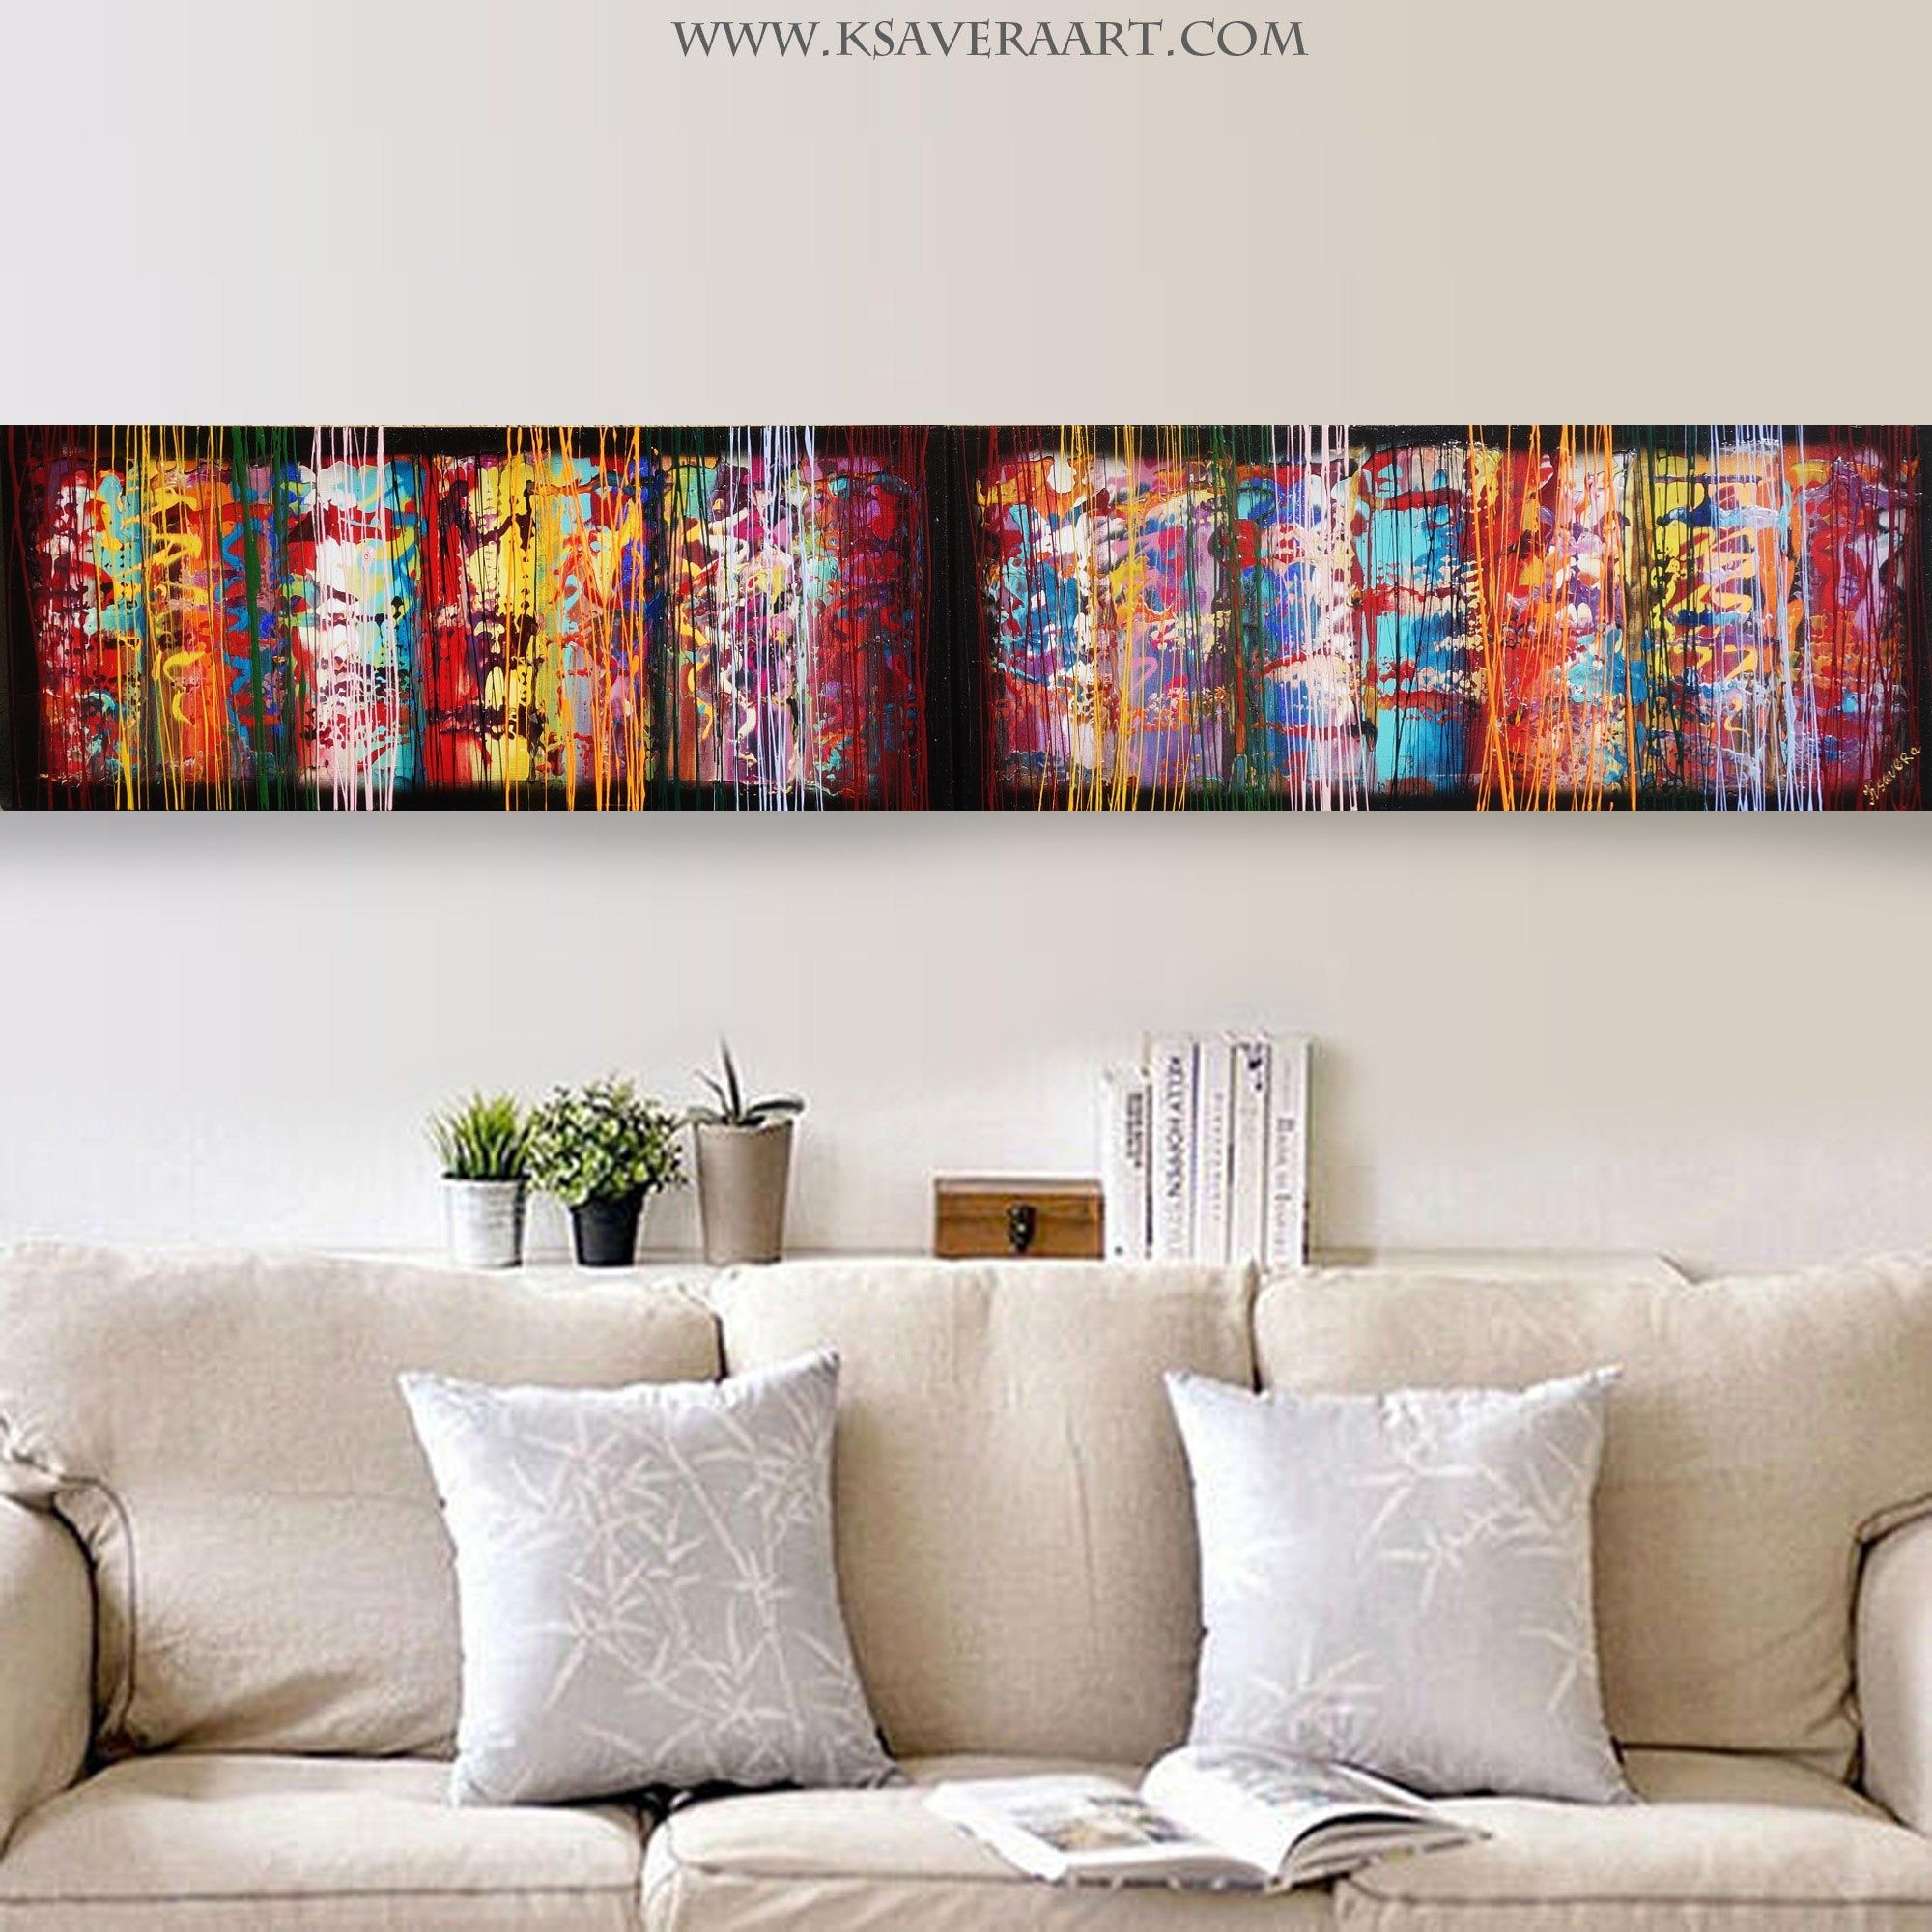 Colorful Abstract Painting A620 for Lounge, Office, Sleeping room or above sofa by Ksavera